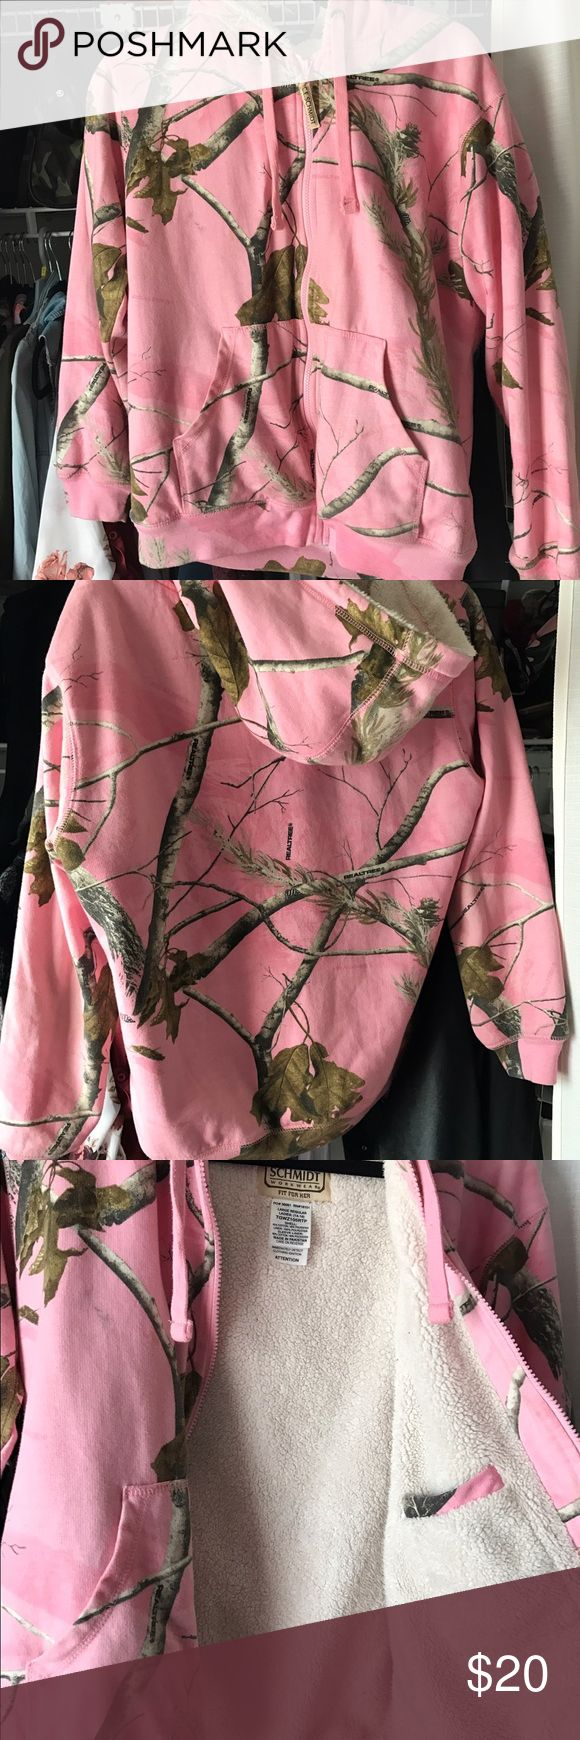 Pink camo jacket This jacket I bought I believe last winter but did get wear once this pass winter. Still in mint condition and really warm. It's a size large but a little short by the arms (but I also like my sleeves long) schmidt work wear  Jackets & Coats